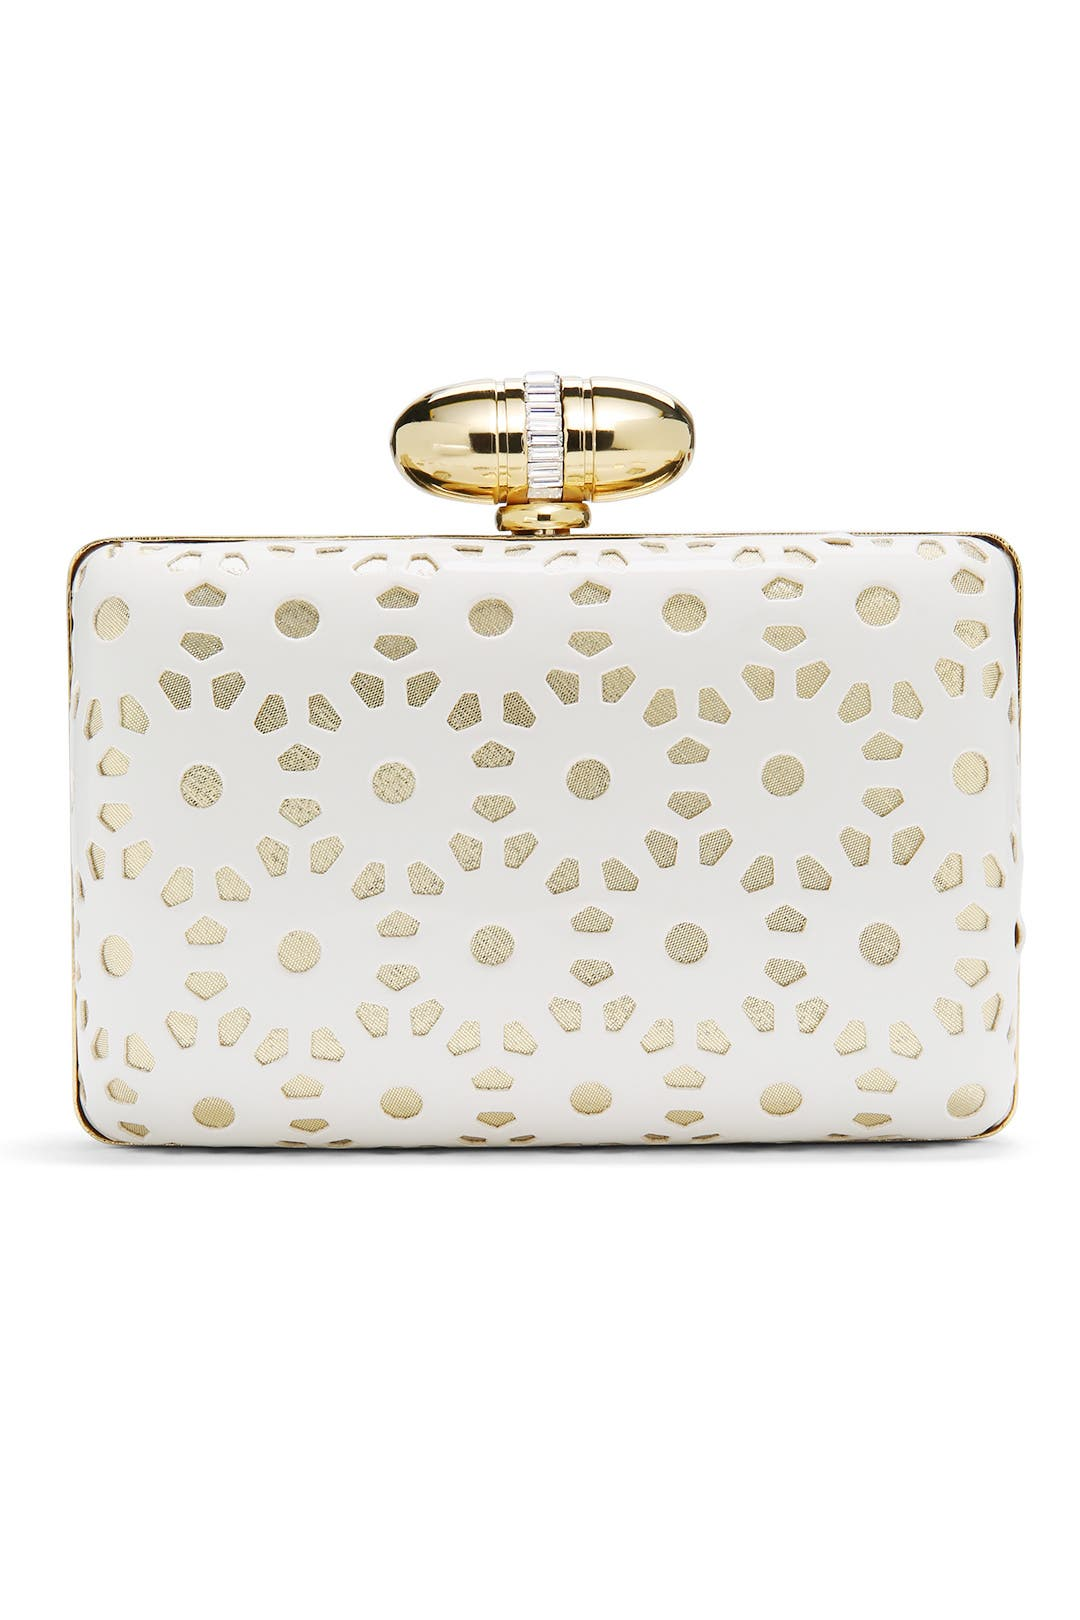 White Maya Clutch by Franchi